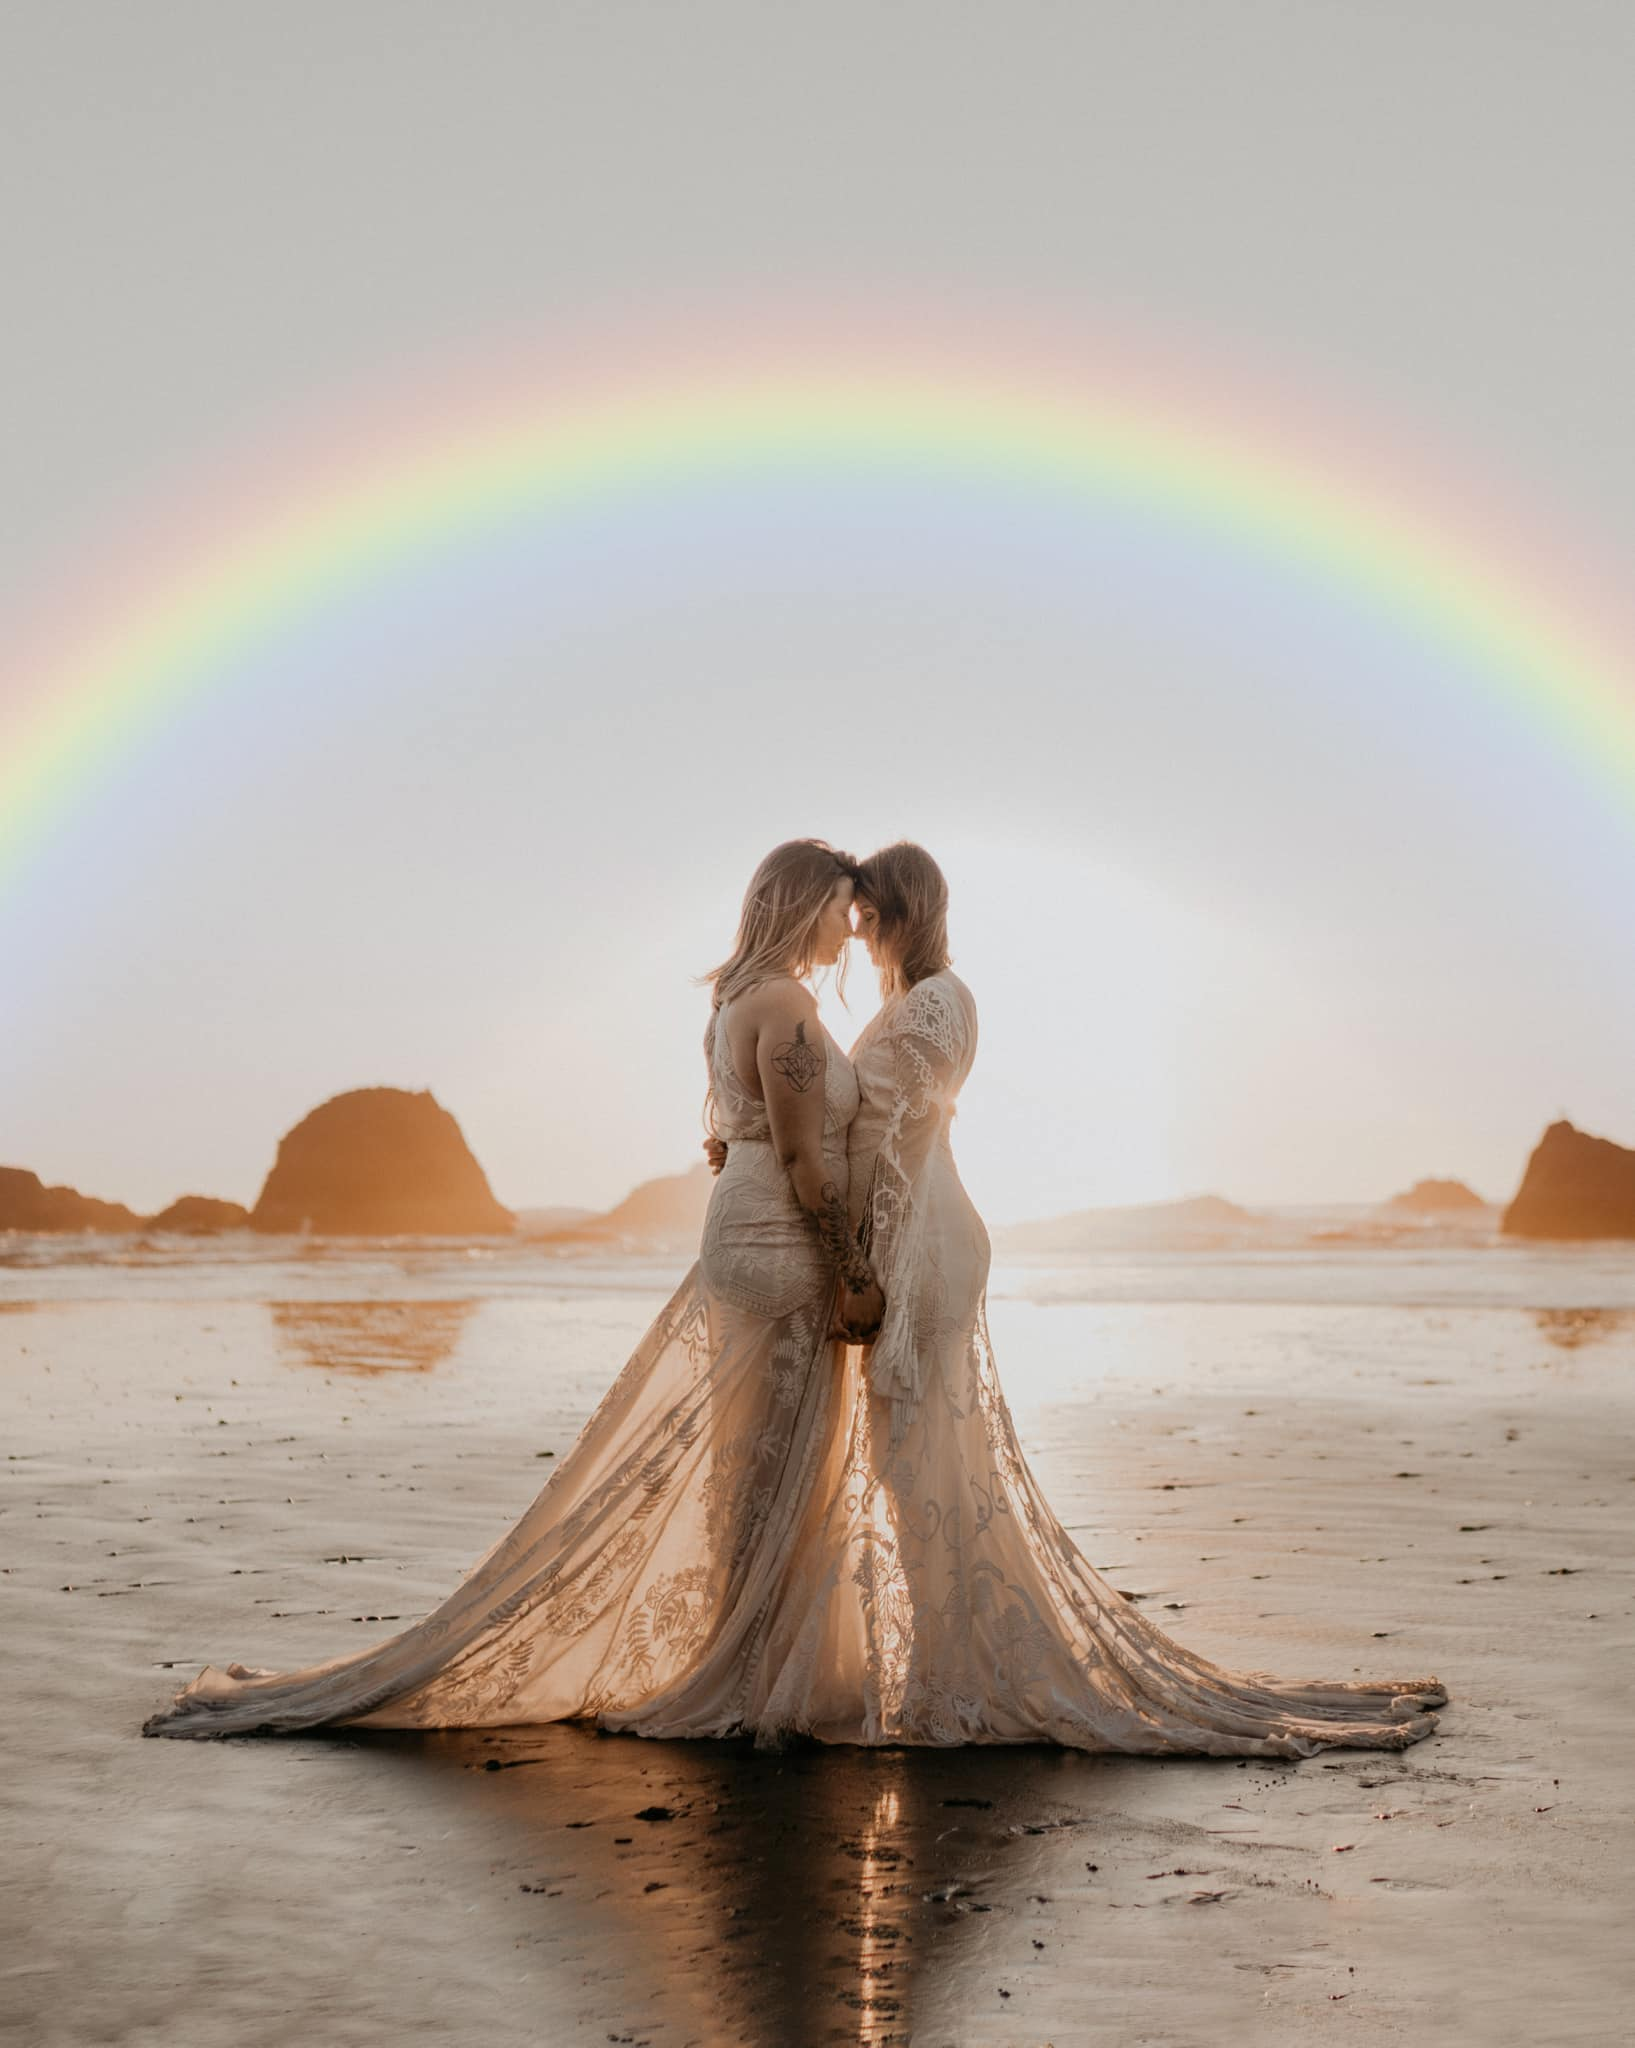 Celebrating #PrideMonth With These Stunning Photos From Our Community